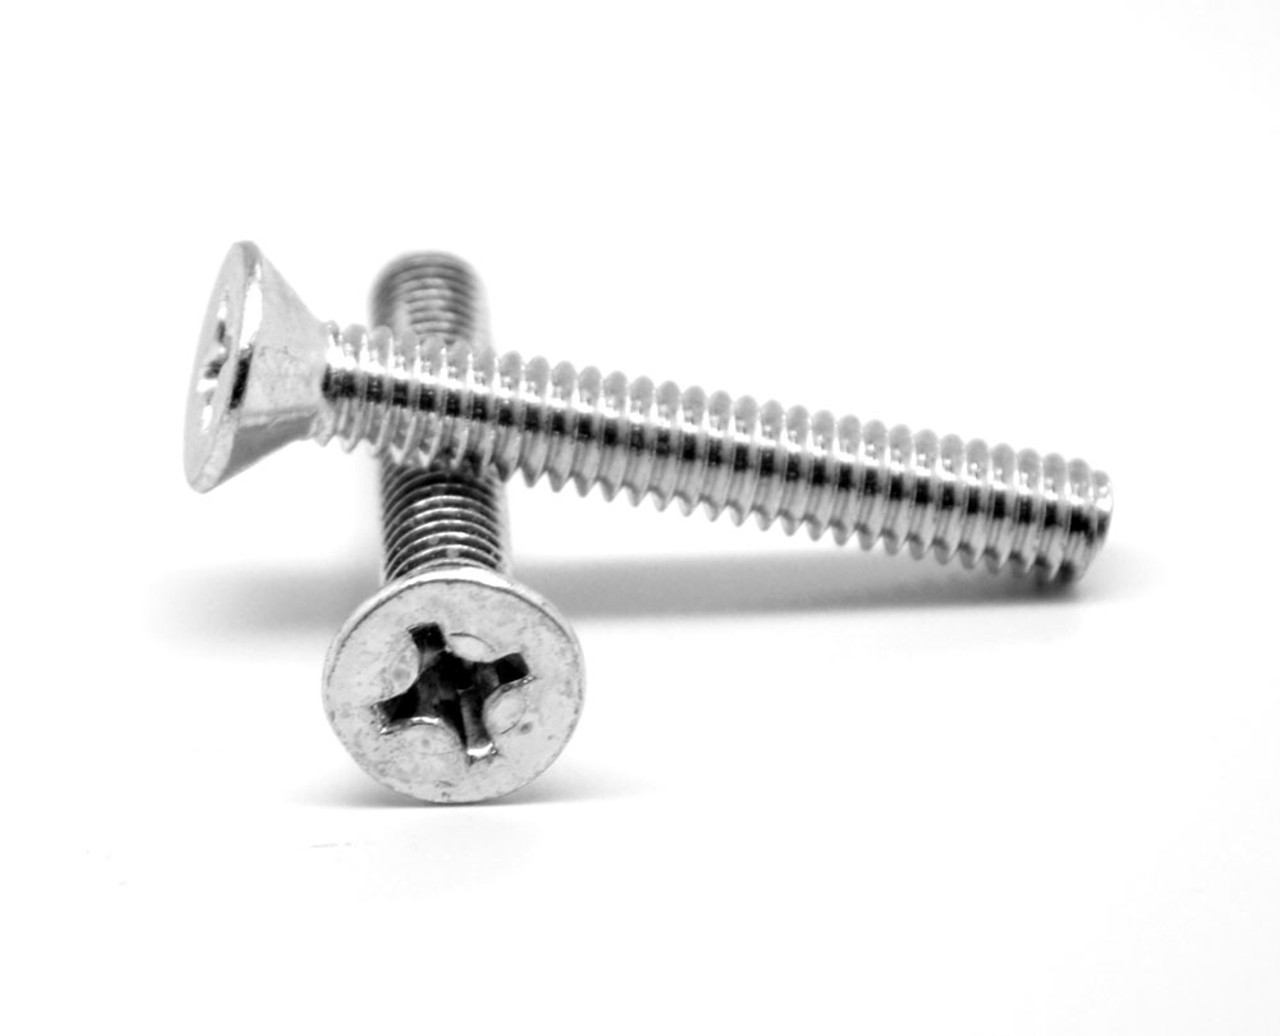 #0-80 x 1/8 Fine Thread Machine Screw Phillips Flat Head Low Carbon Steel Zinc Plated